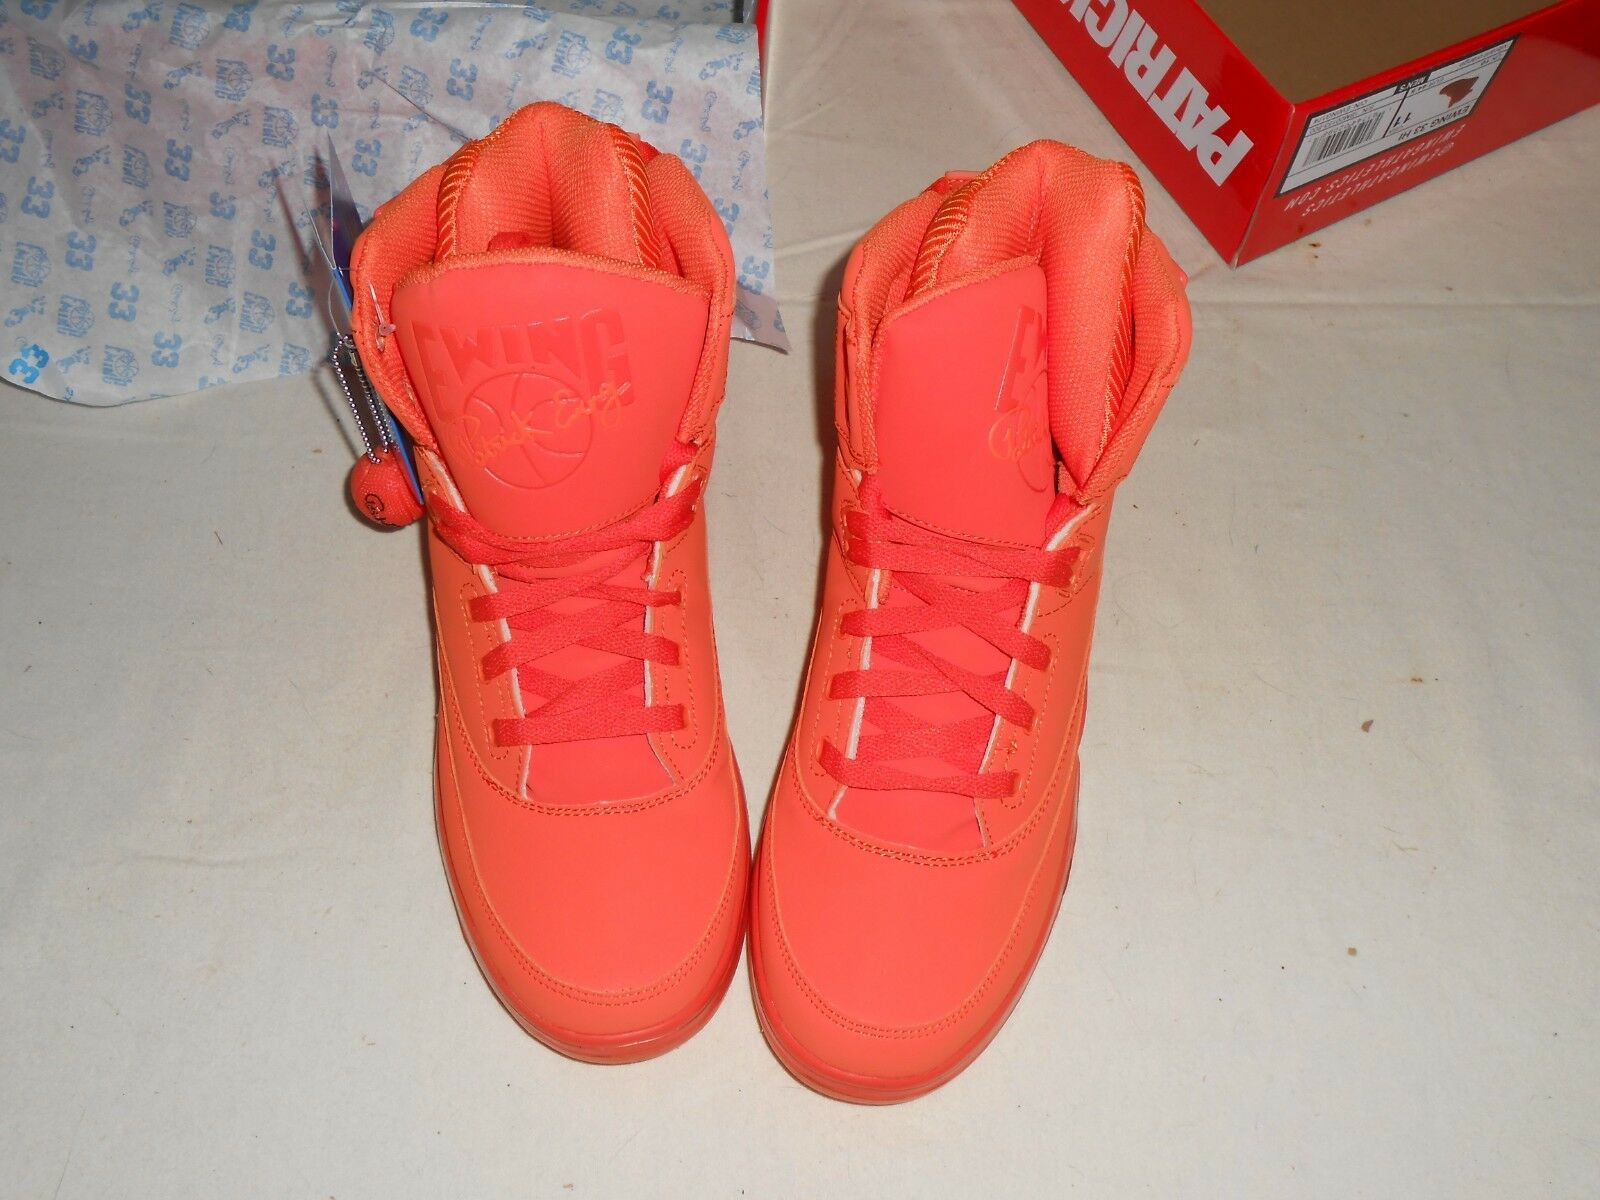 New PATRICK EWING Athletics 33 Schuhes HI Vibrant Orange Basketball Schuhes 33 - Größe 11 4fc822